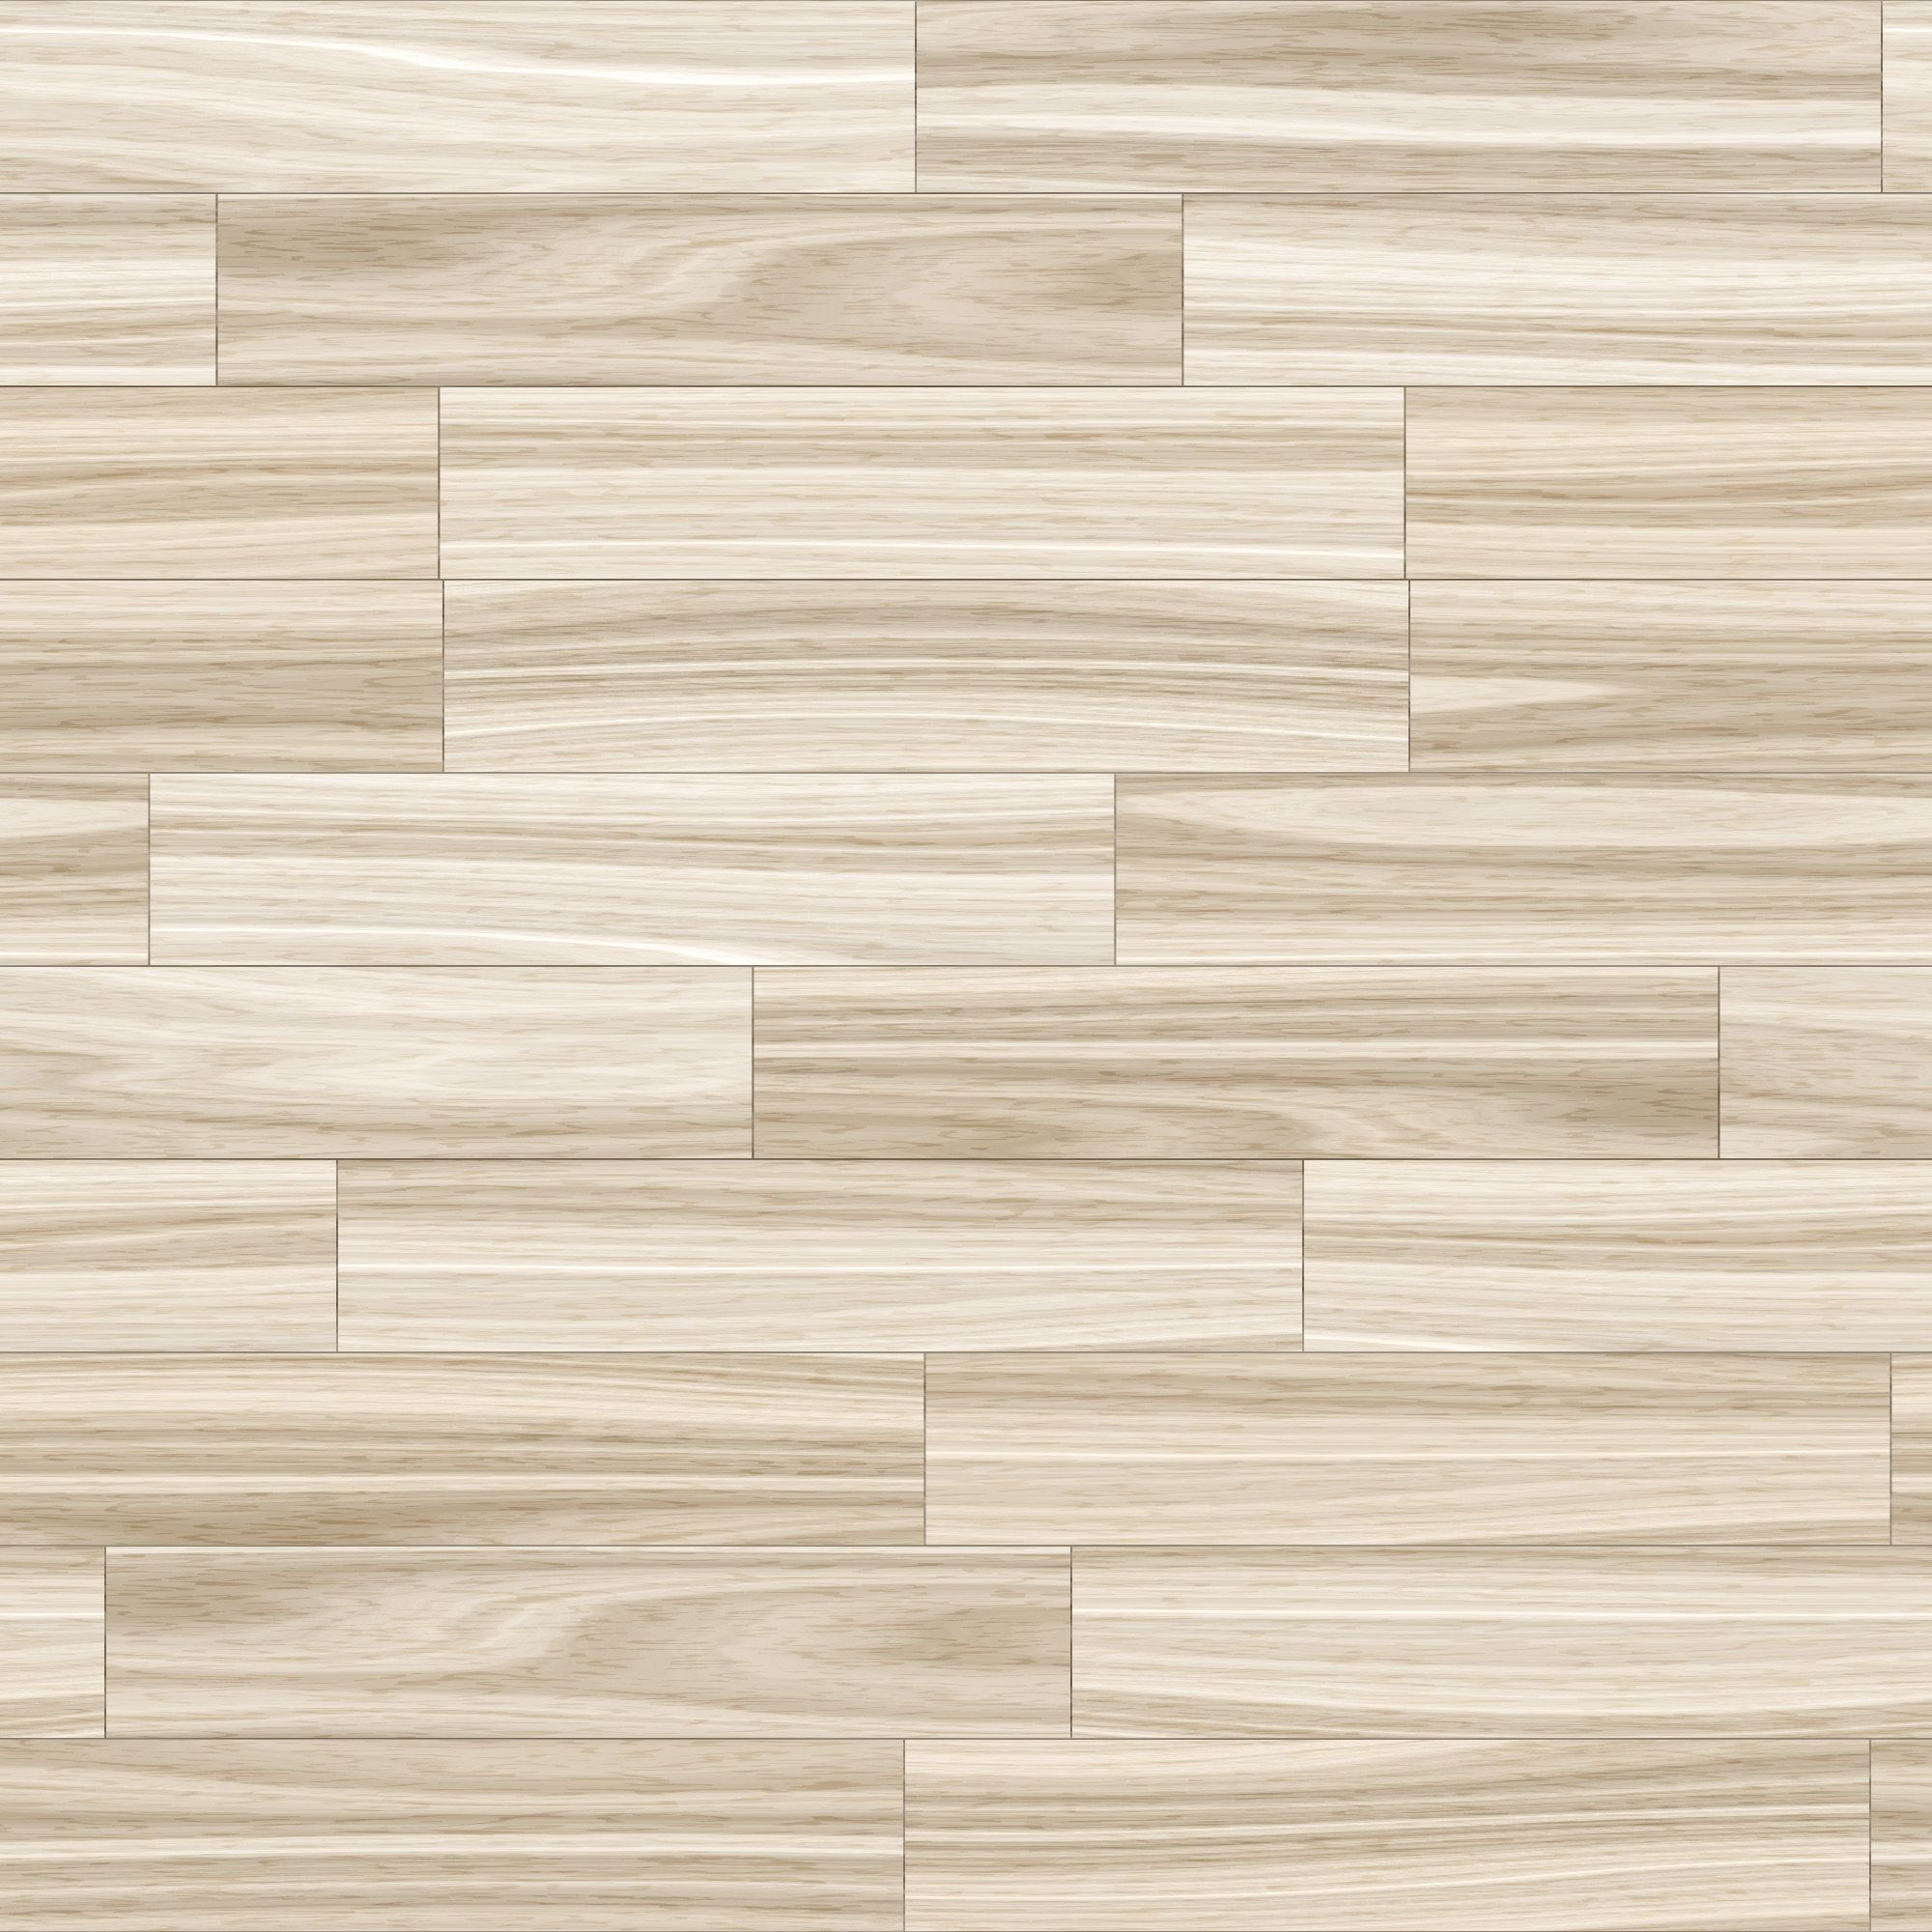 explore wood plank texture wood planks and more